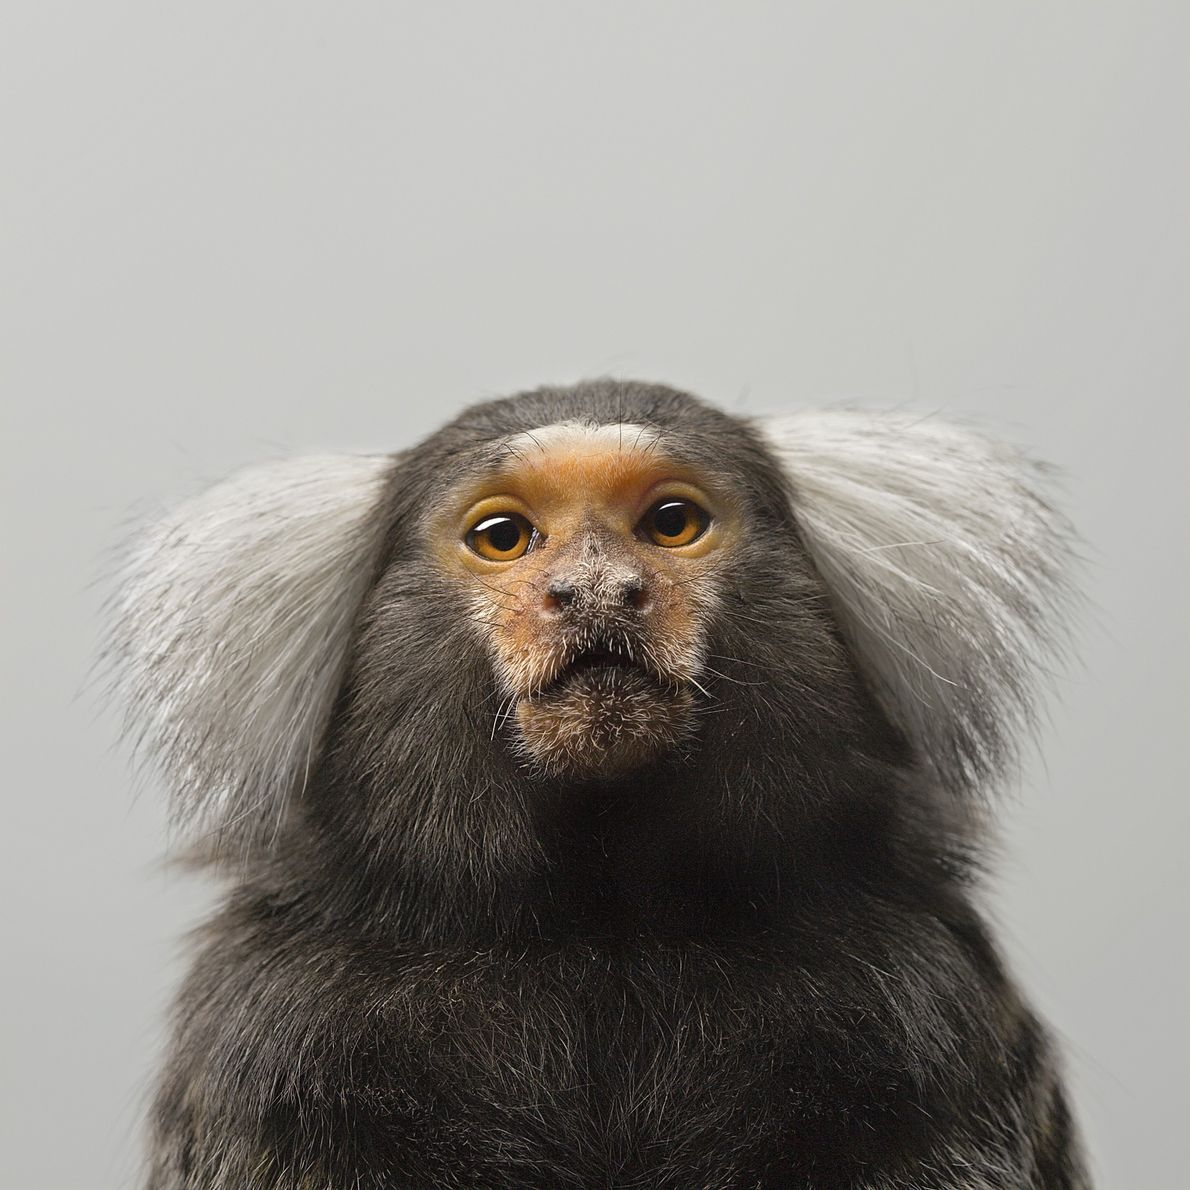 In the wild, marmosets, a type of monkey found in South America, are highly cooperative. They ...